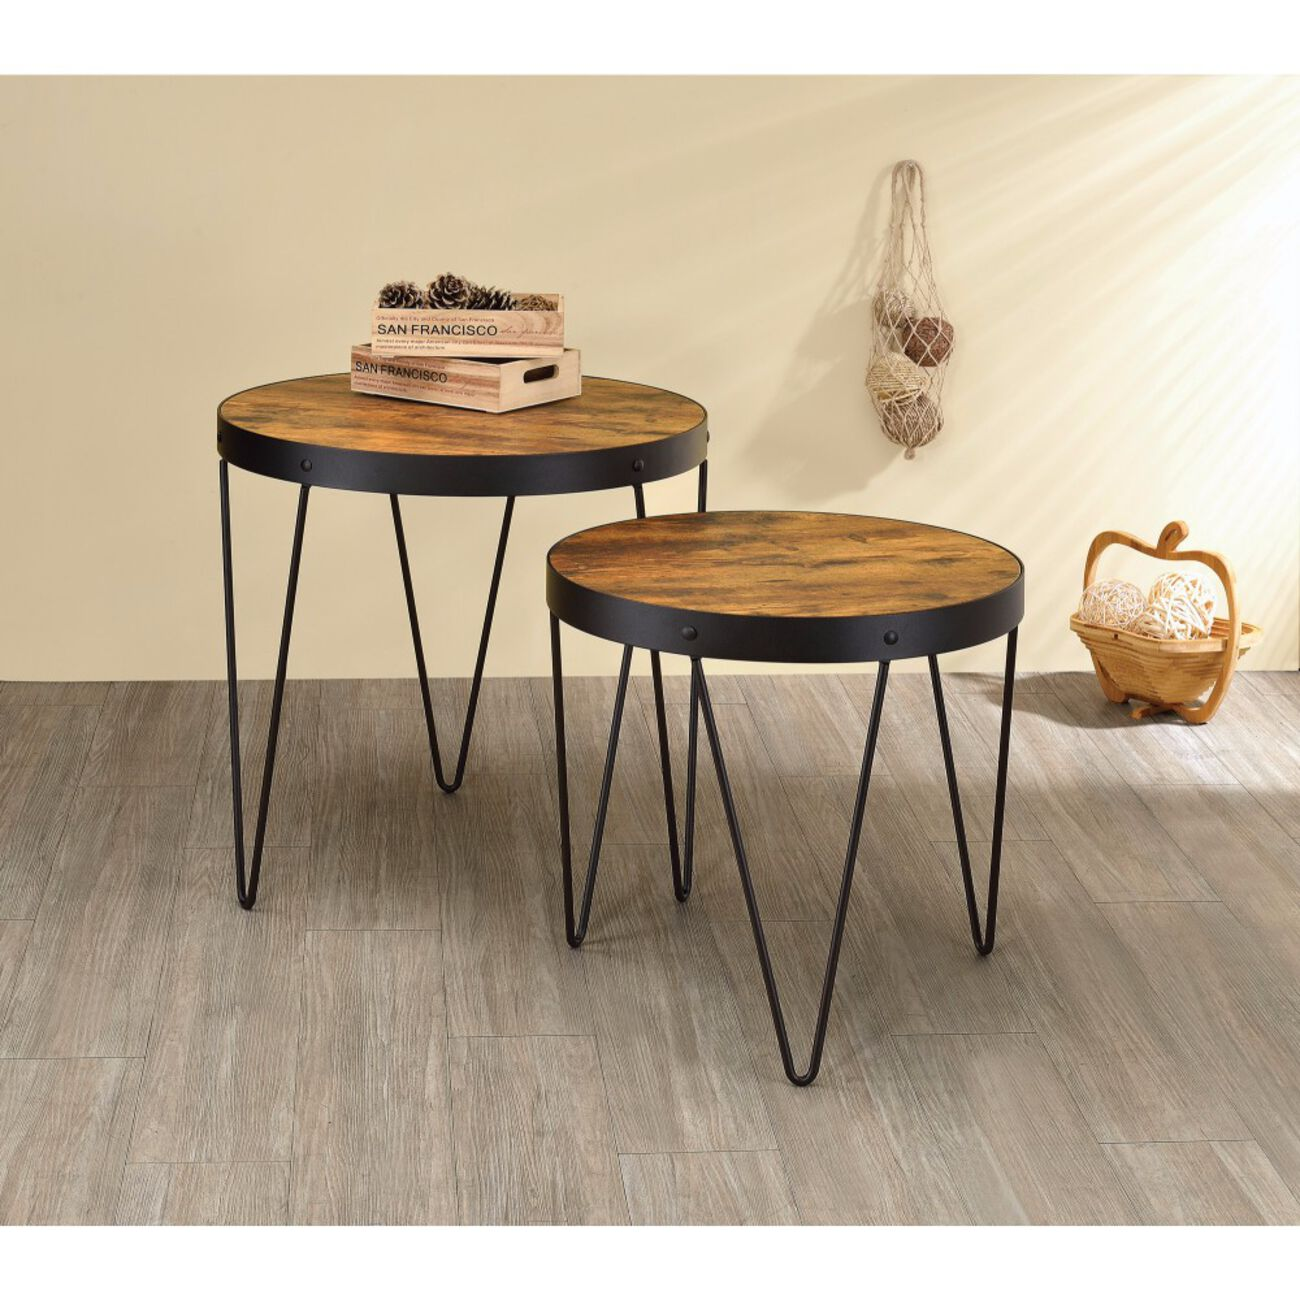 Set Of 2 Round Metal Table With Wood Top, Brown & Black